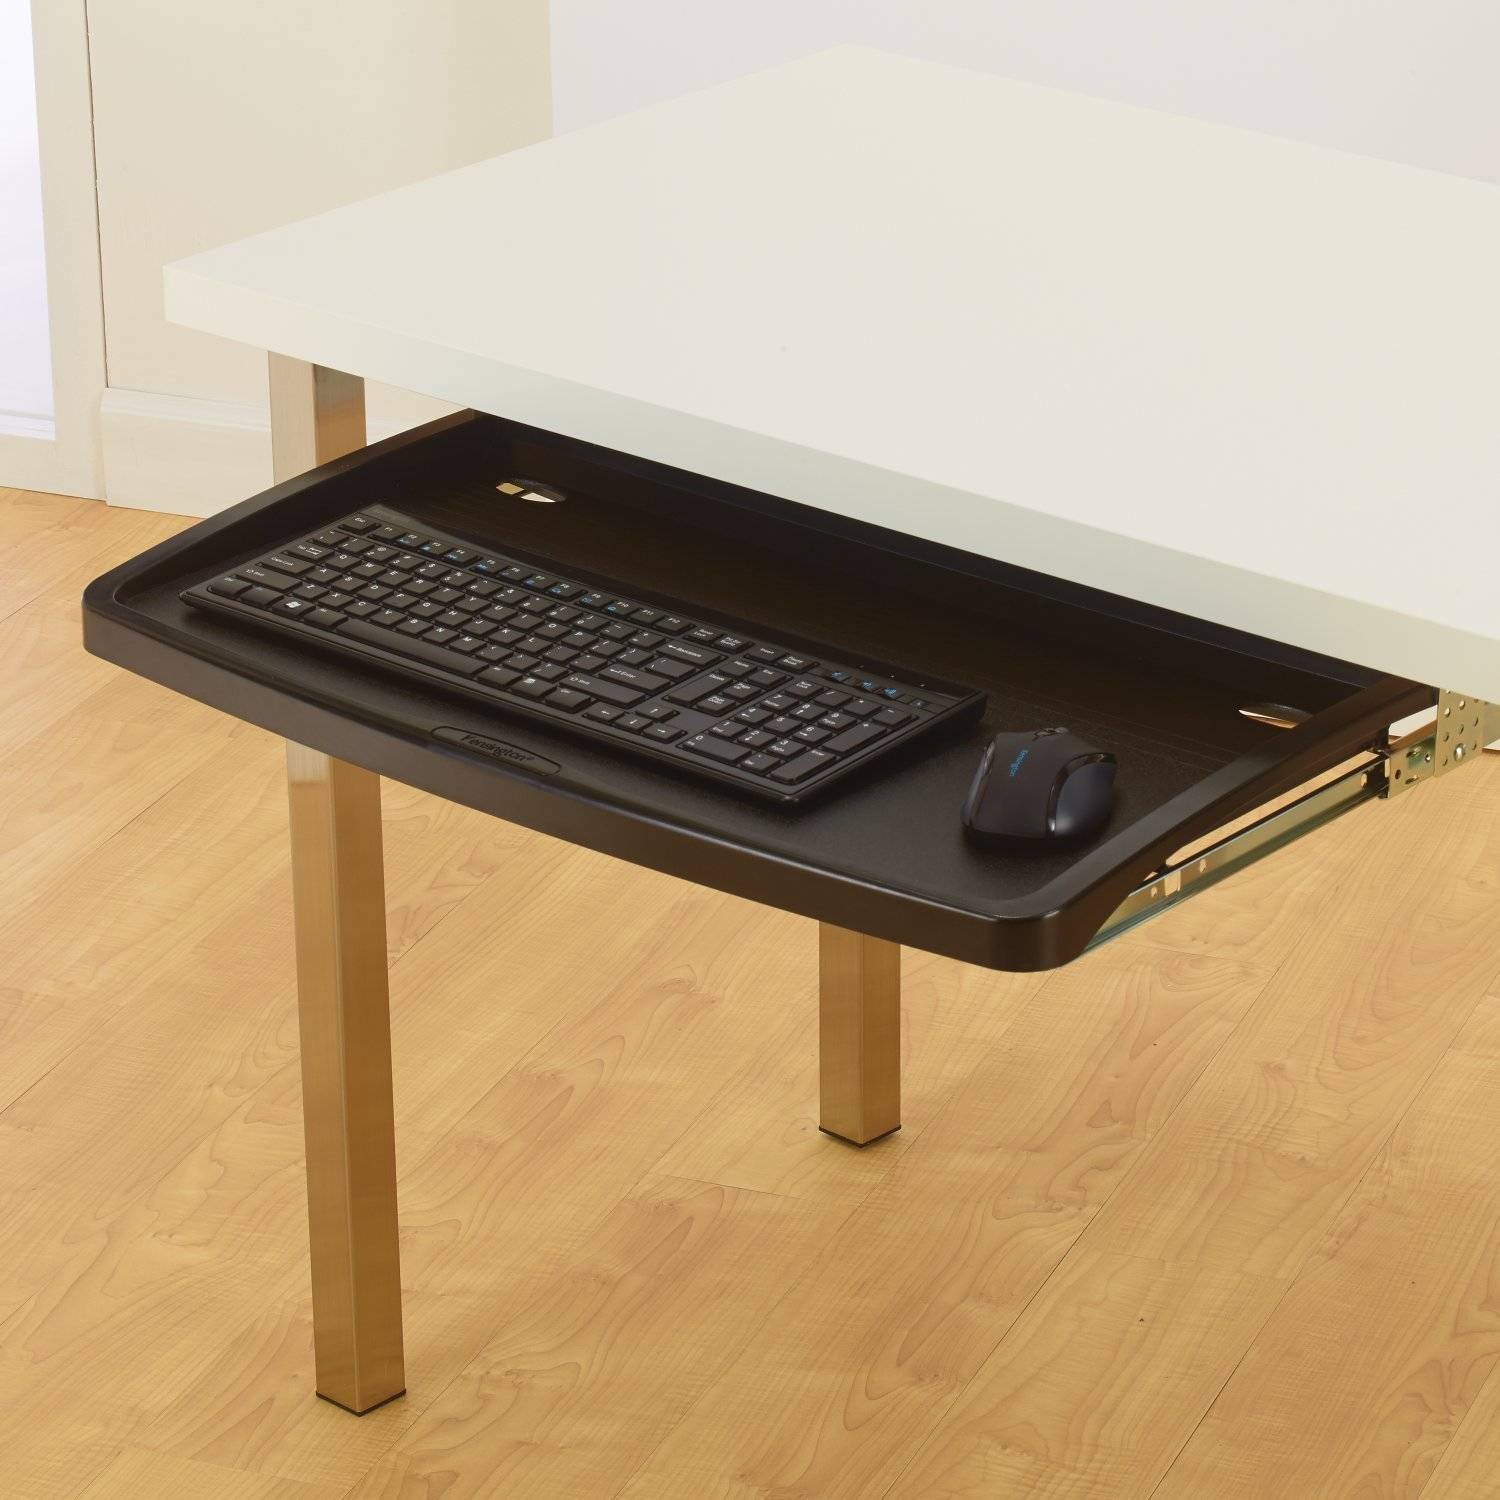 Kensington Underdesk Comfort Keyboard Drawer with SmartFit System